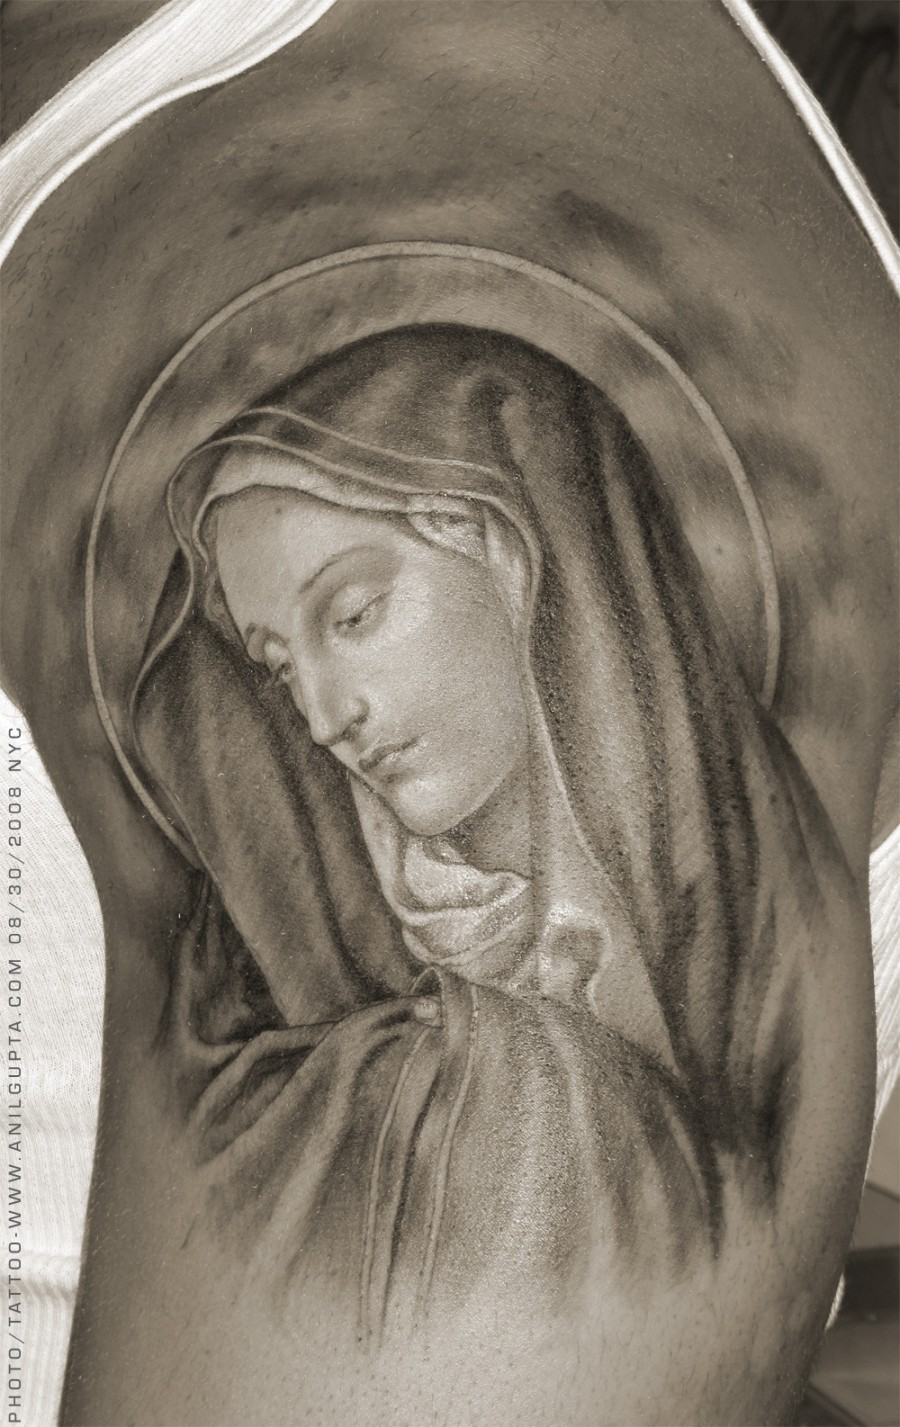 Inspirational Virgin Mary Tattoo Design Ideas Example Religious